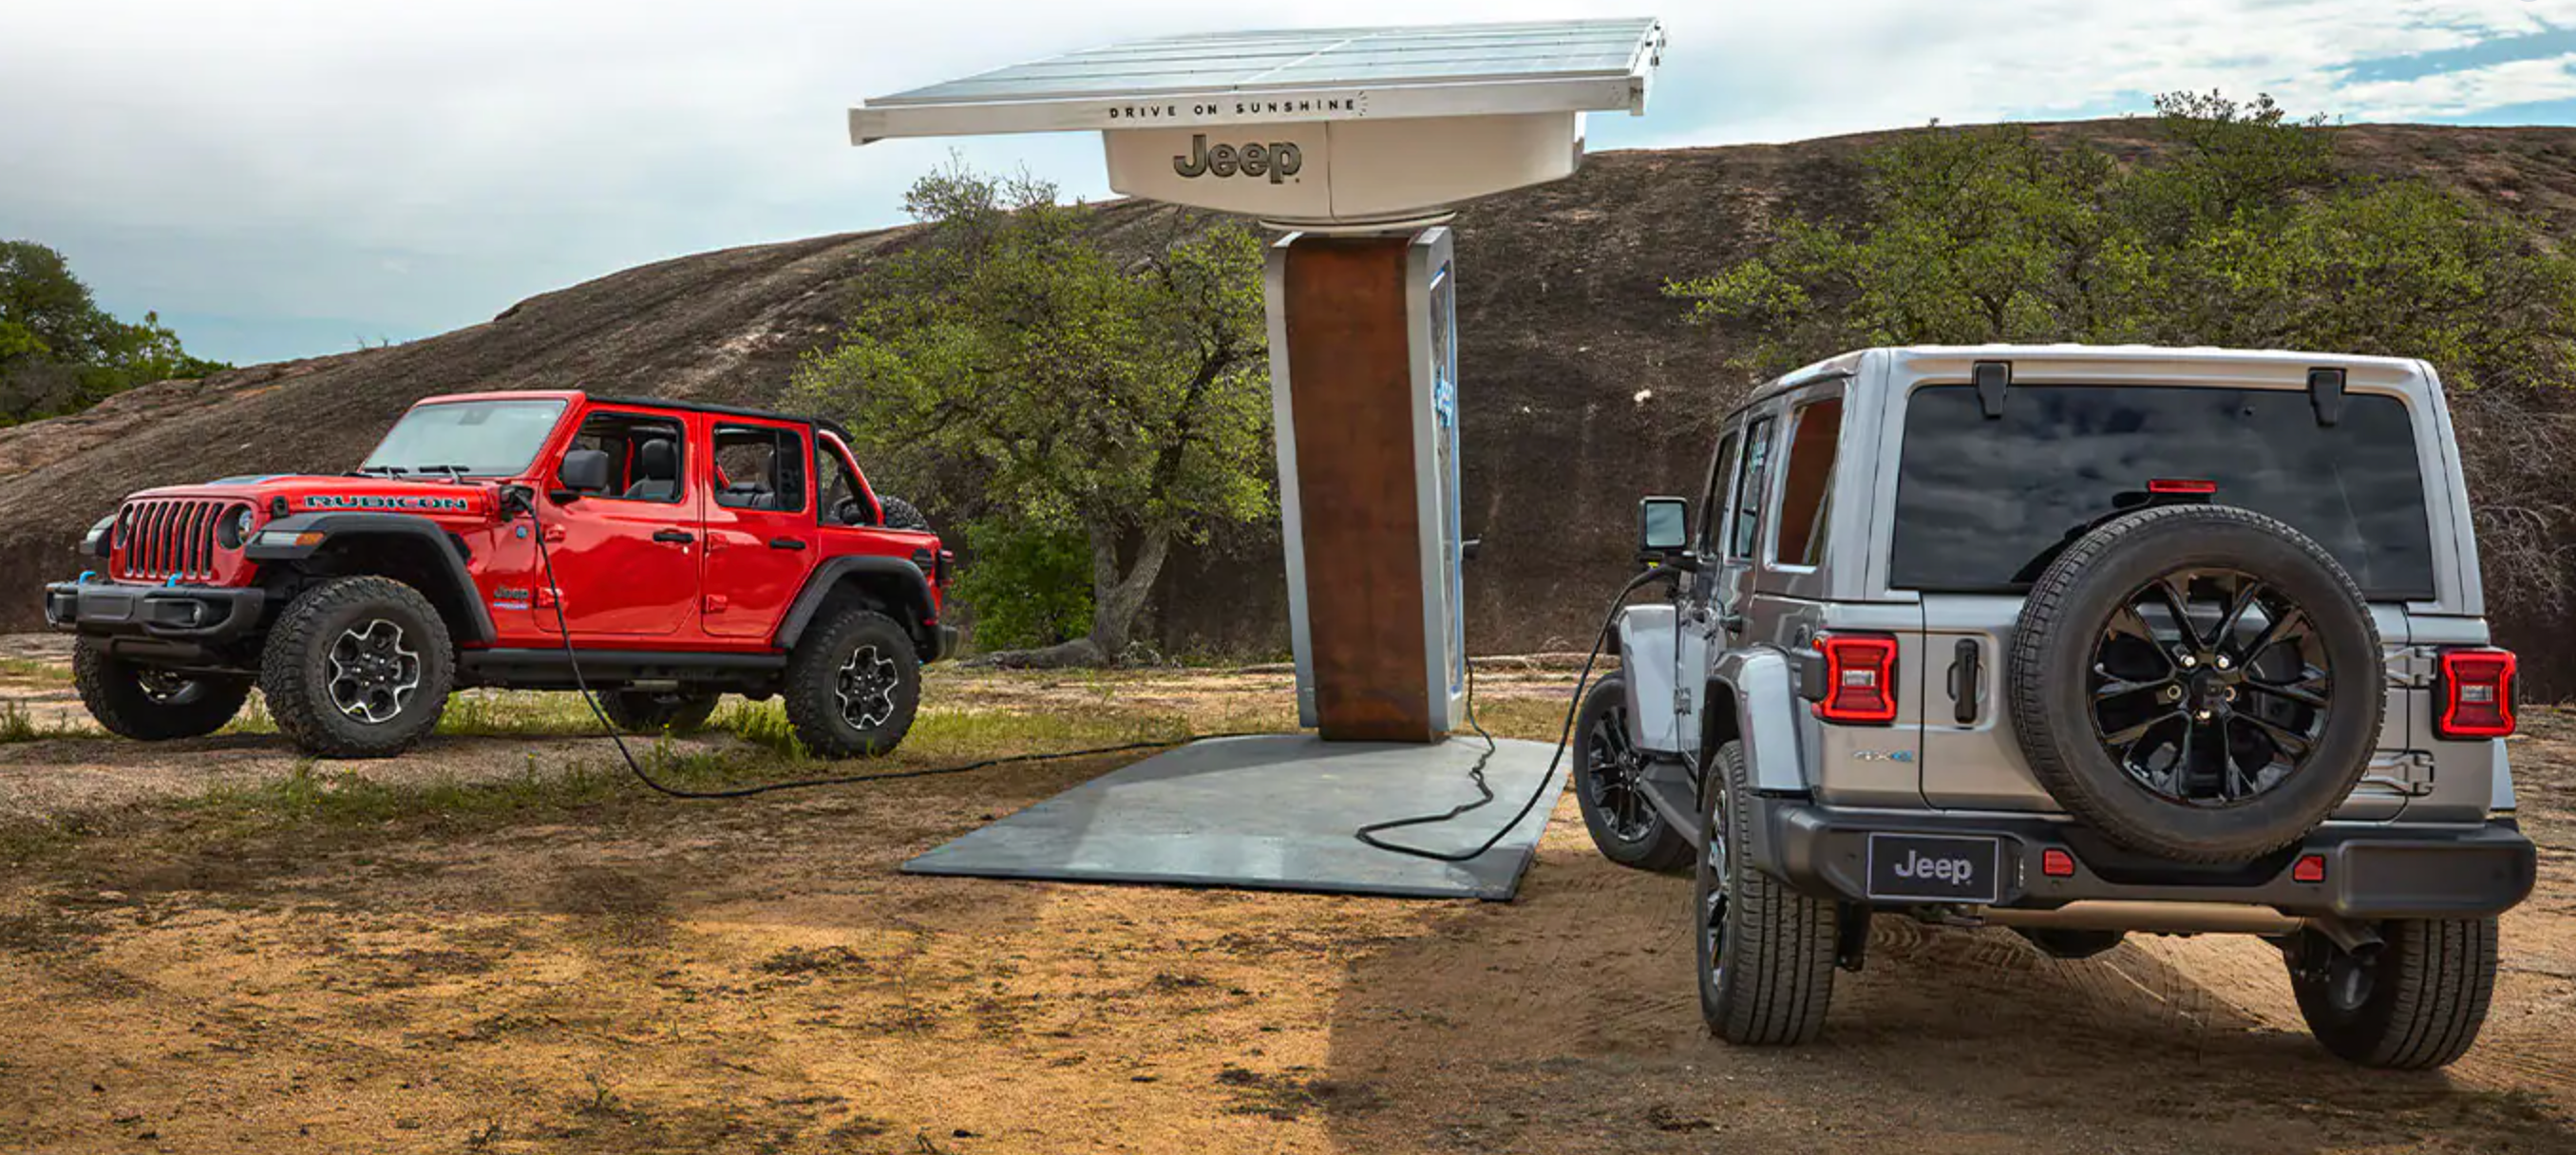 The new 2021 Jeep Wrangler 4xe charging